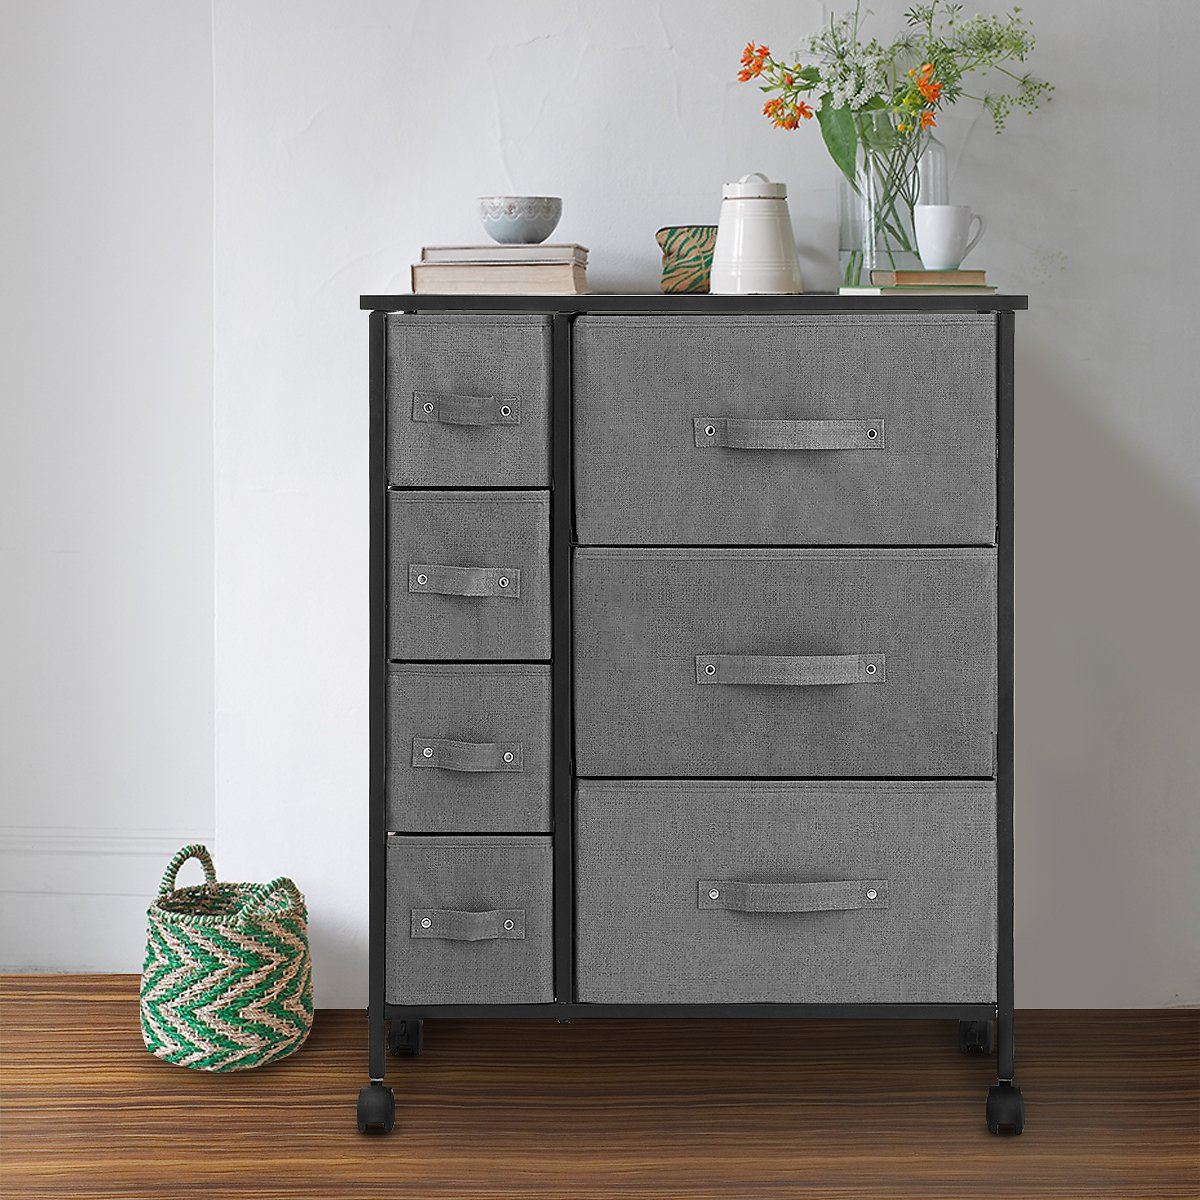 7 Drawers Dresser - KingSo Furniture Storage Tower Organizer Unit with Sturdy Steel Frame and Easy-Pull Chest of Drawers for Bed